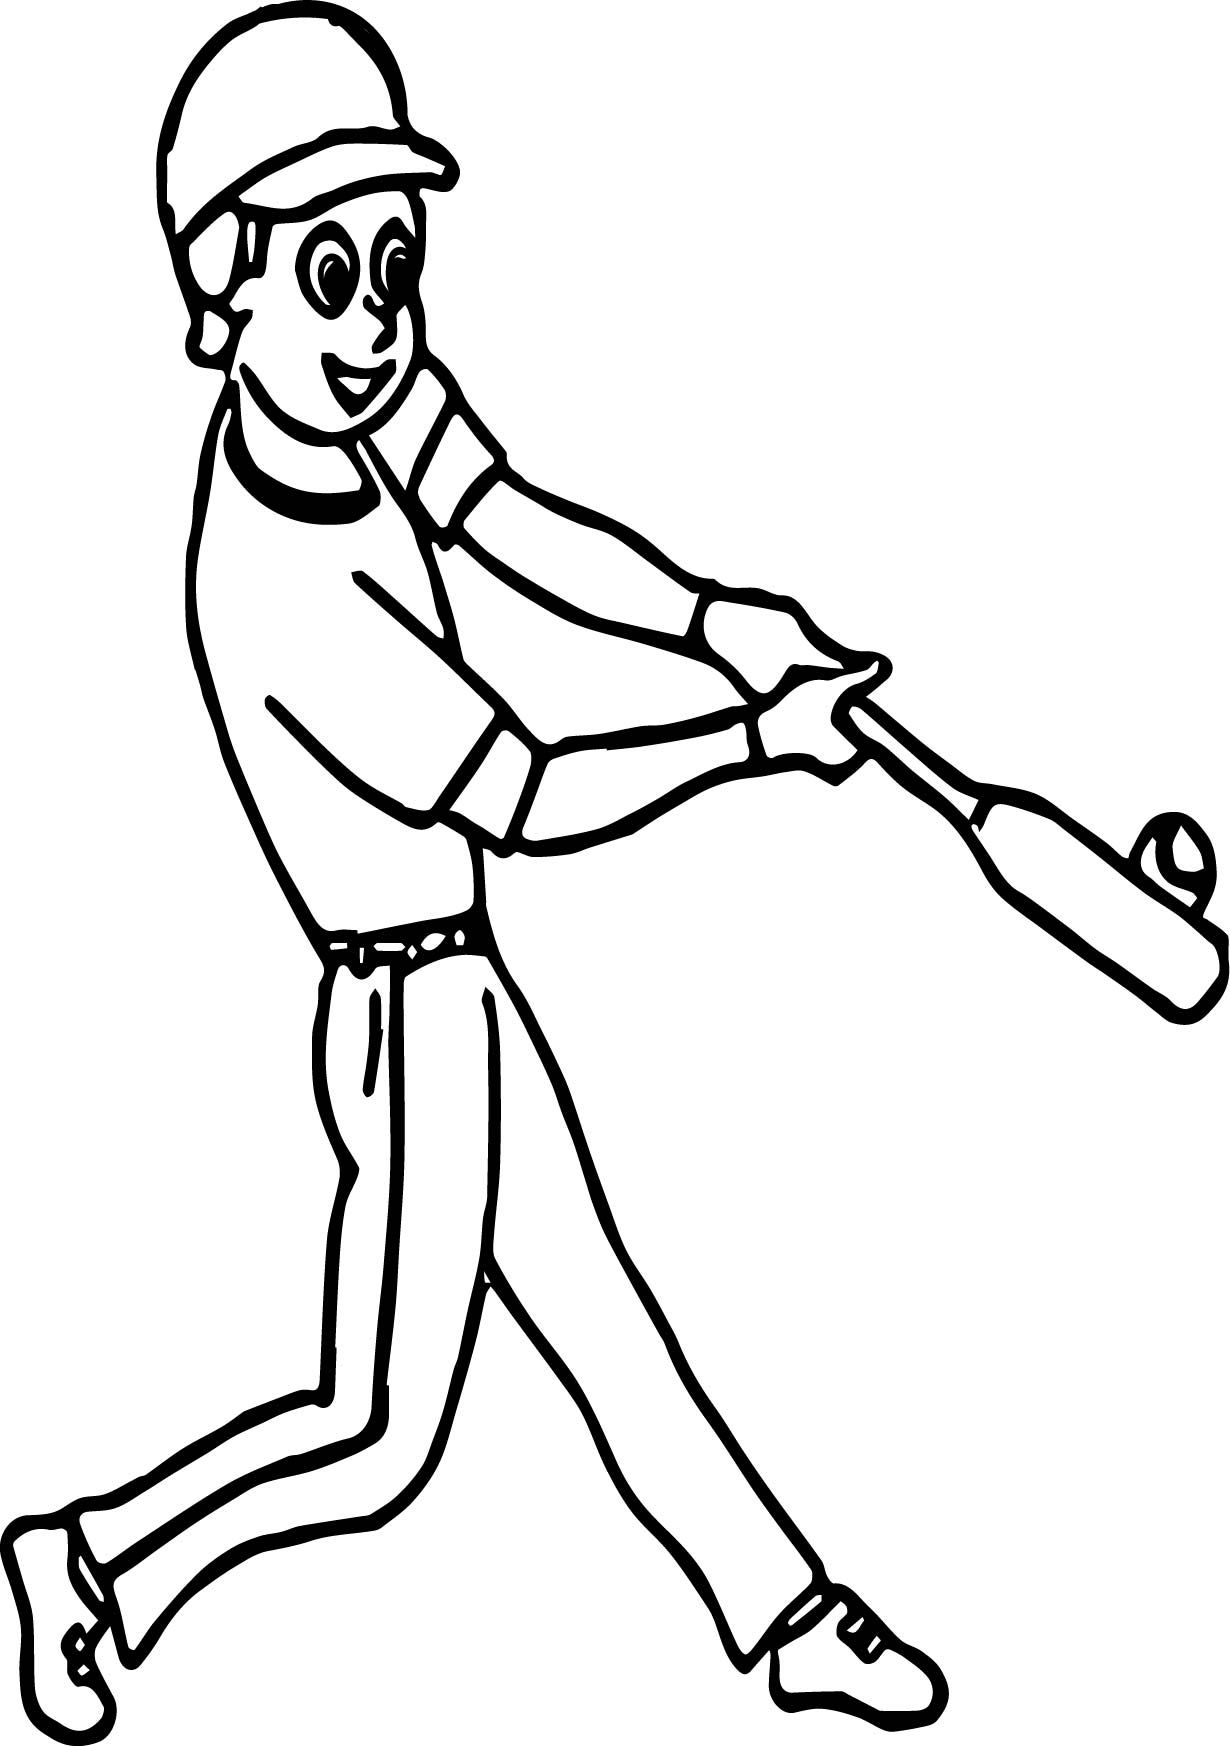 Awesome Popcorn Bucket Playing Baseball Coloring Page Baseball